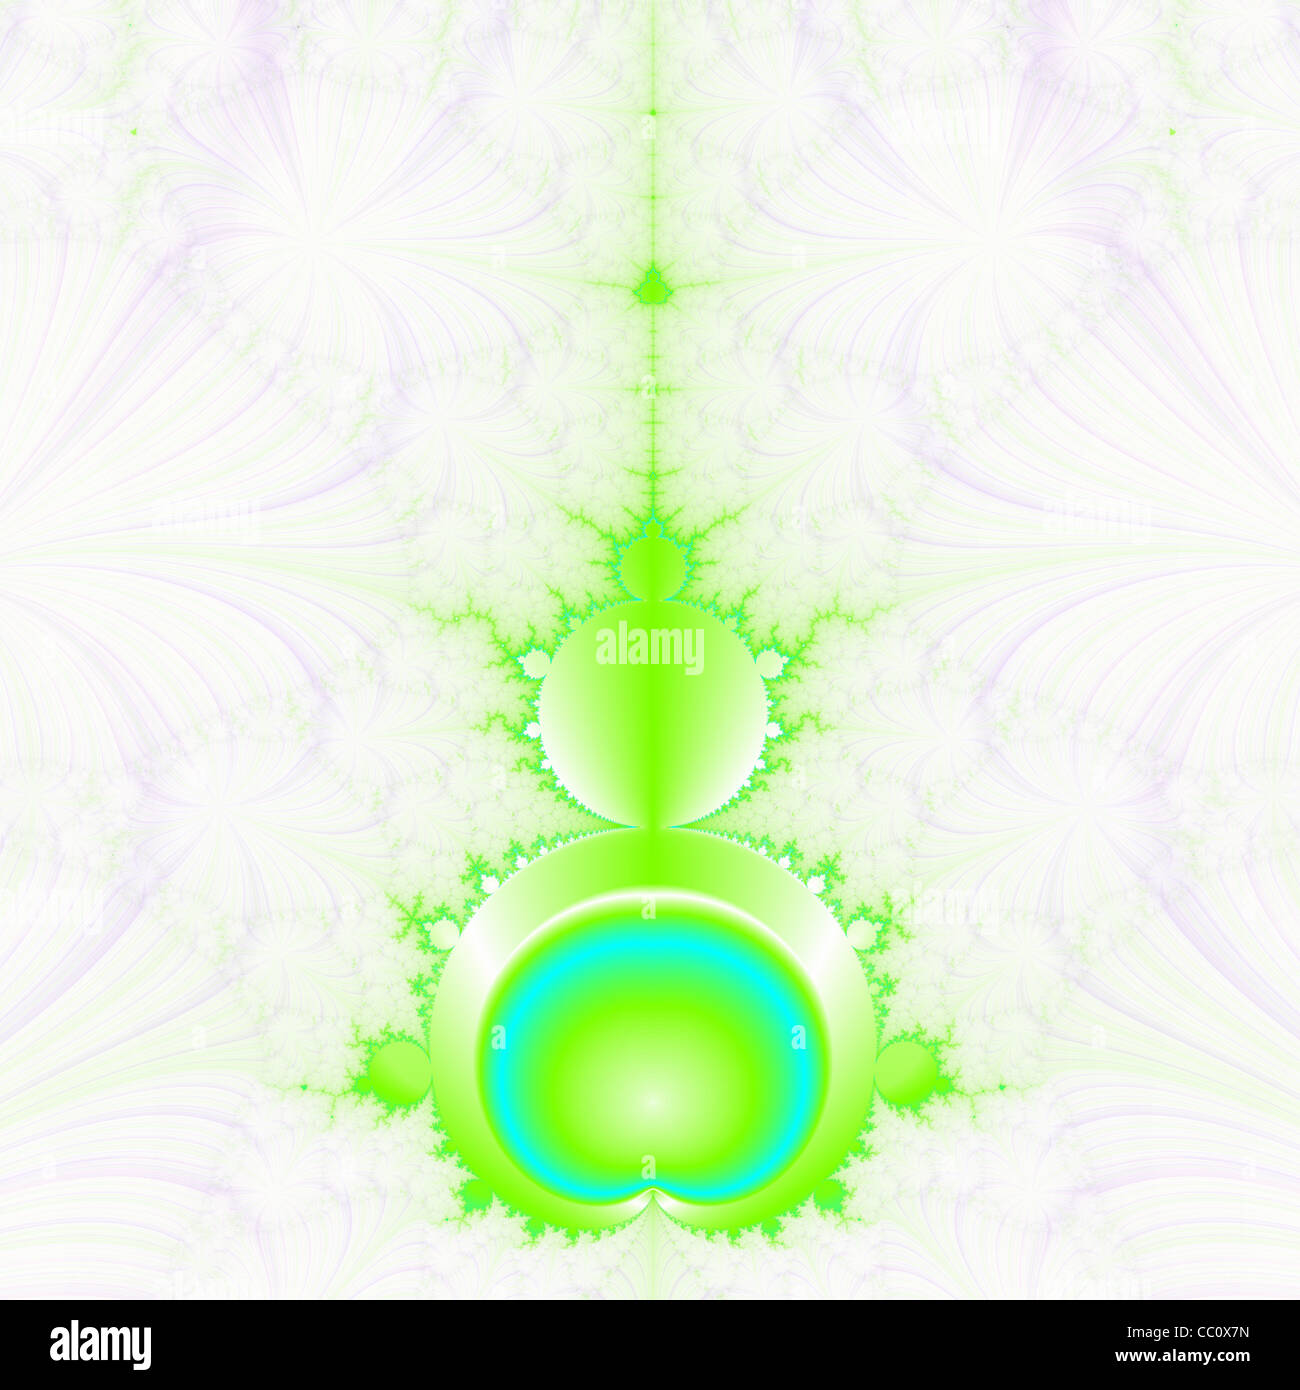 Mandelbrot in Green and Blue - Stock Image